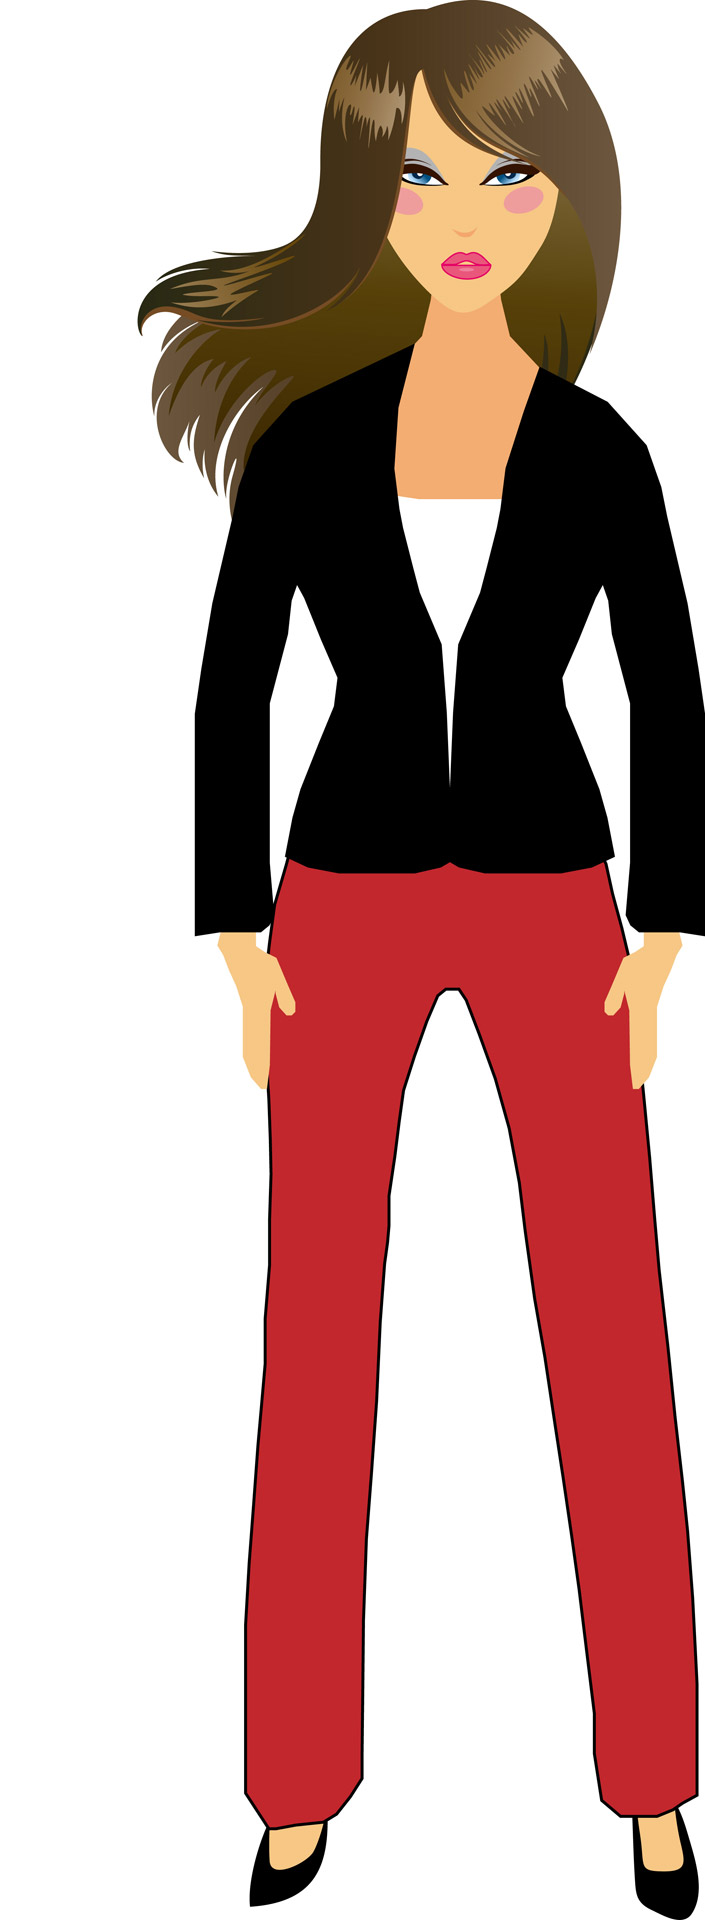 705x1920 Girl Clip Art Free Stock Photo